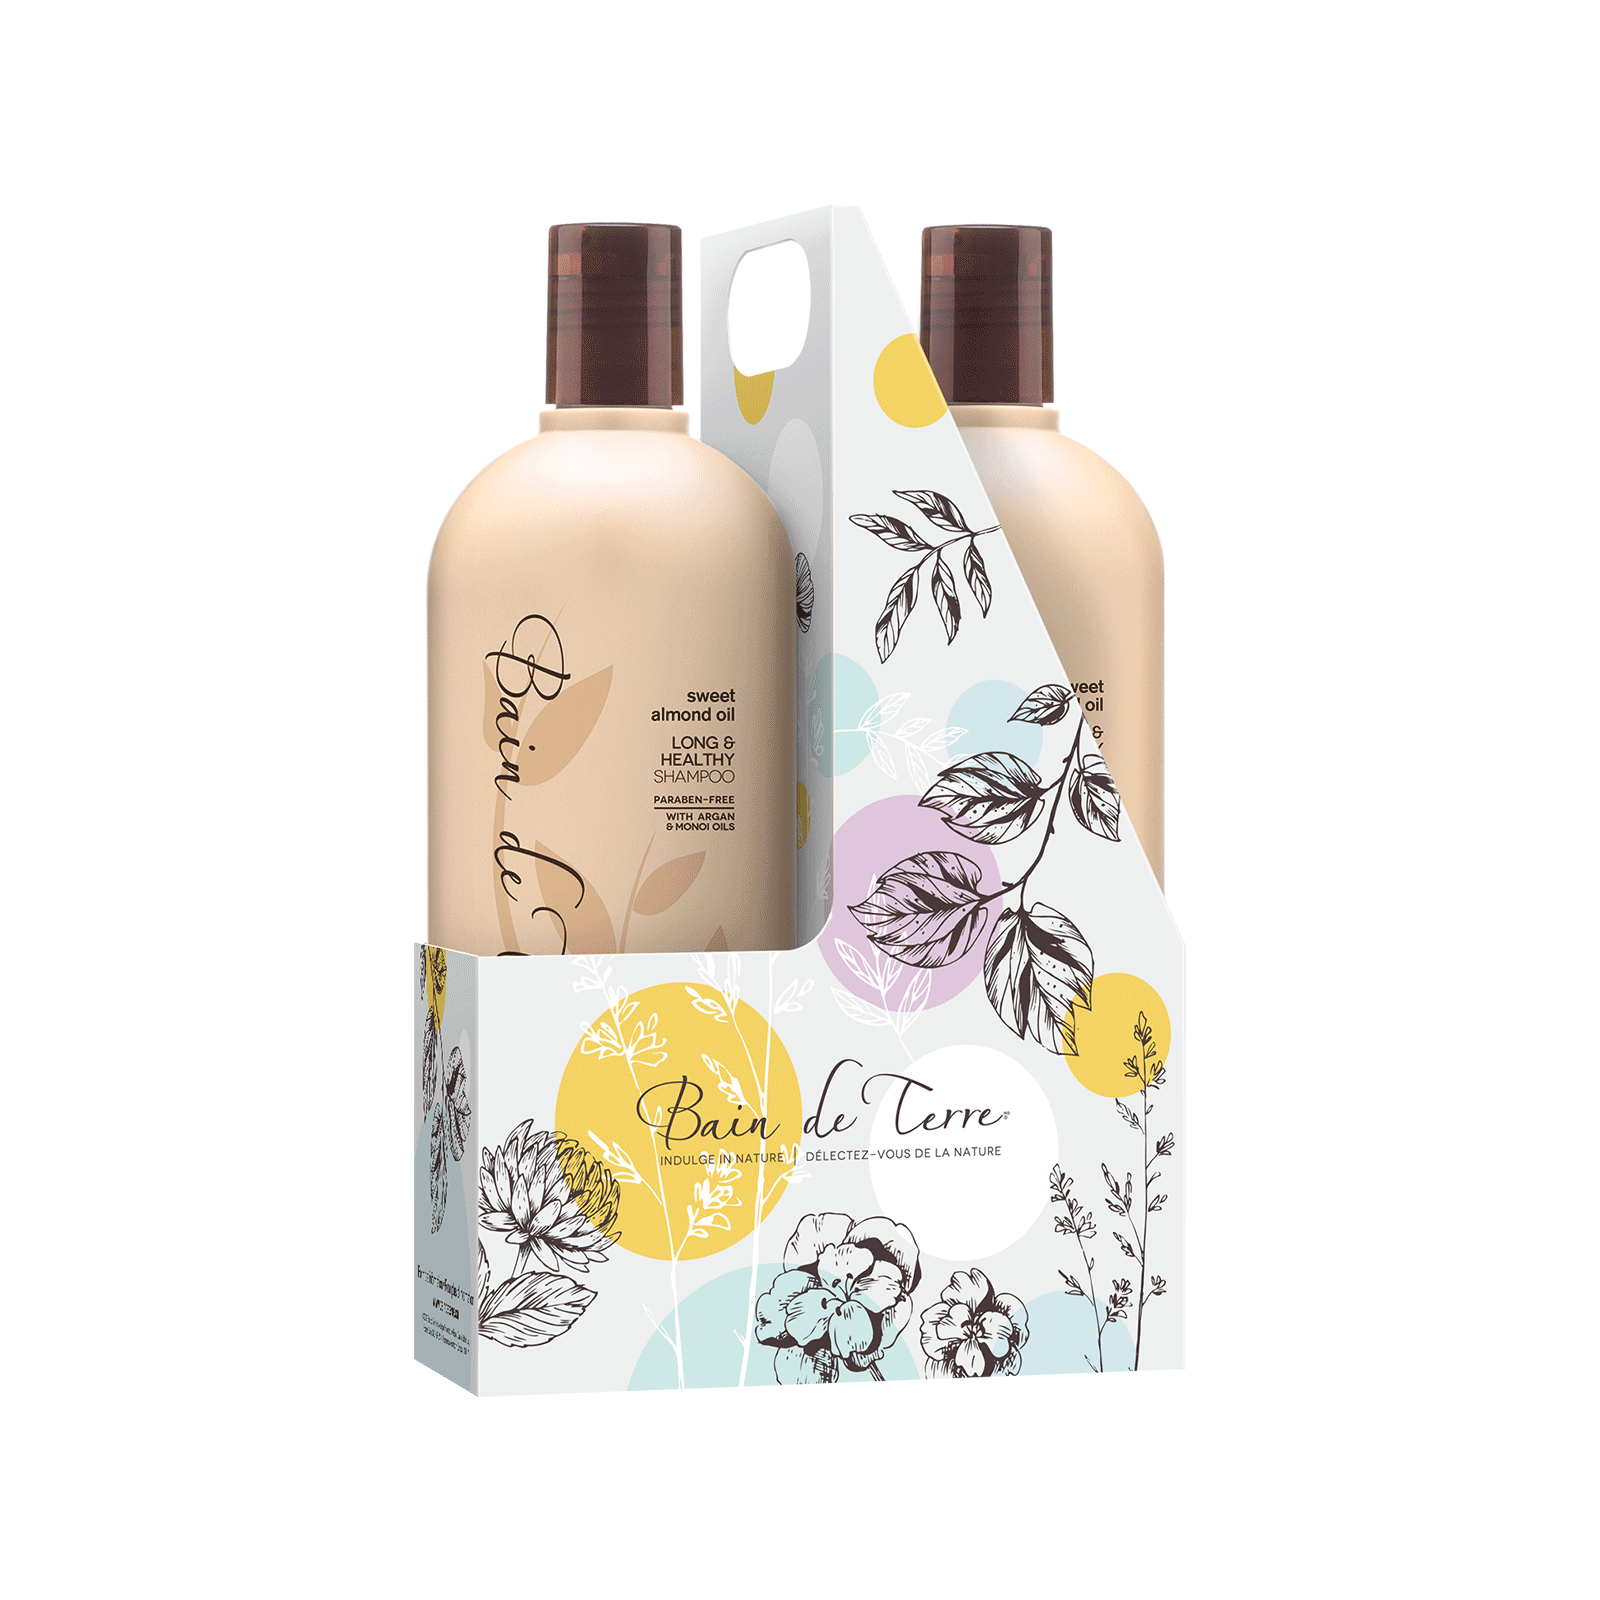 Sweet Almond Oil Shampoo, Conditioner Liter Duo